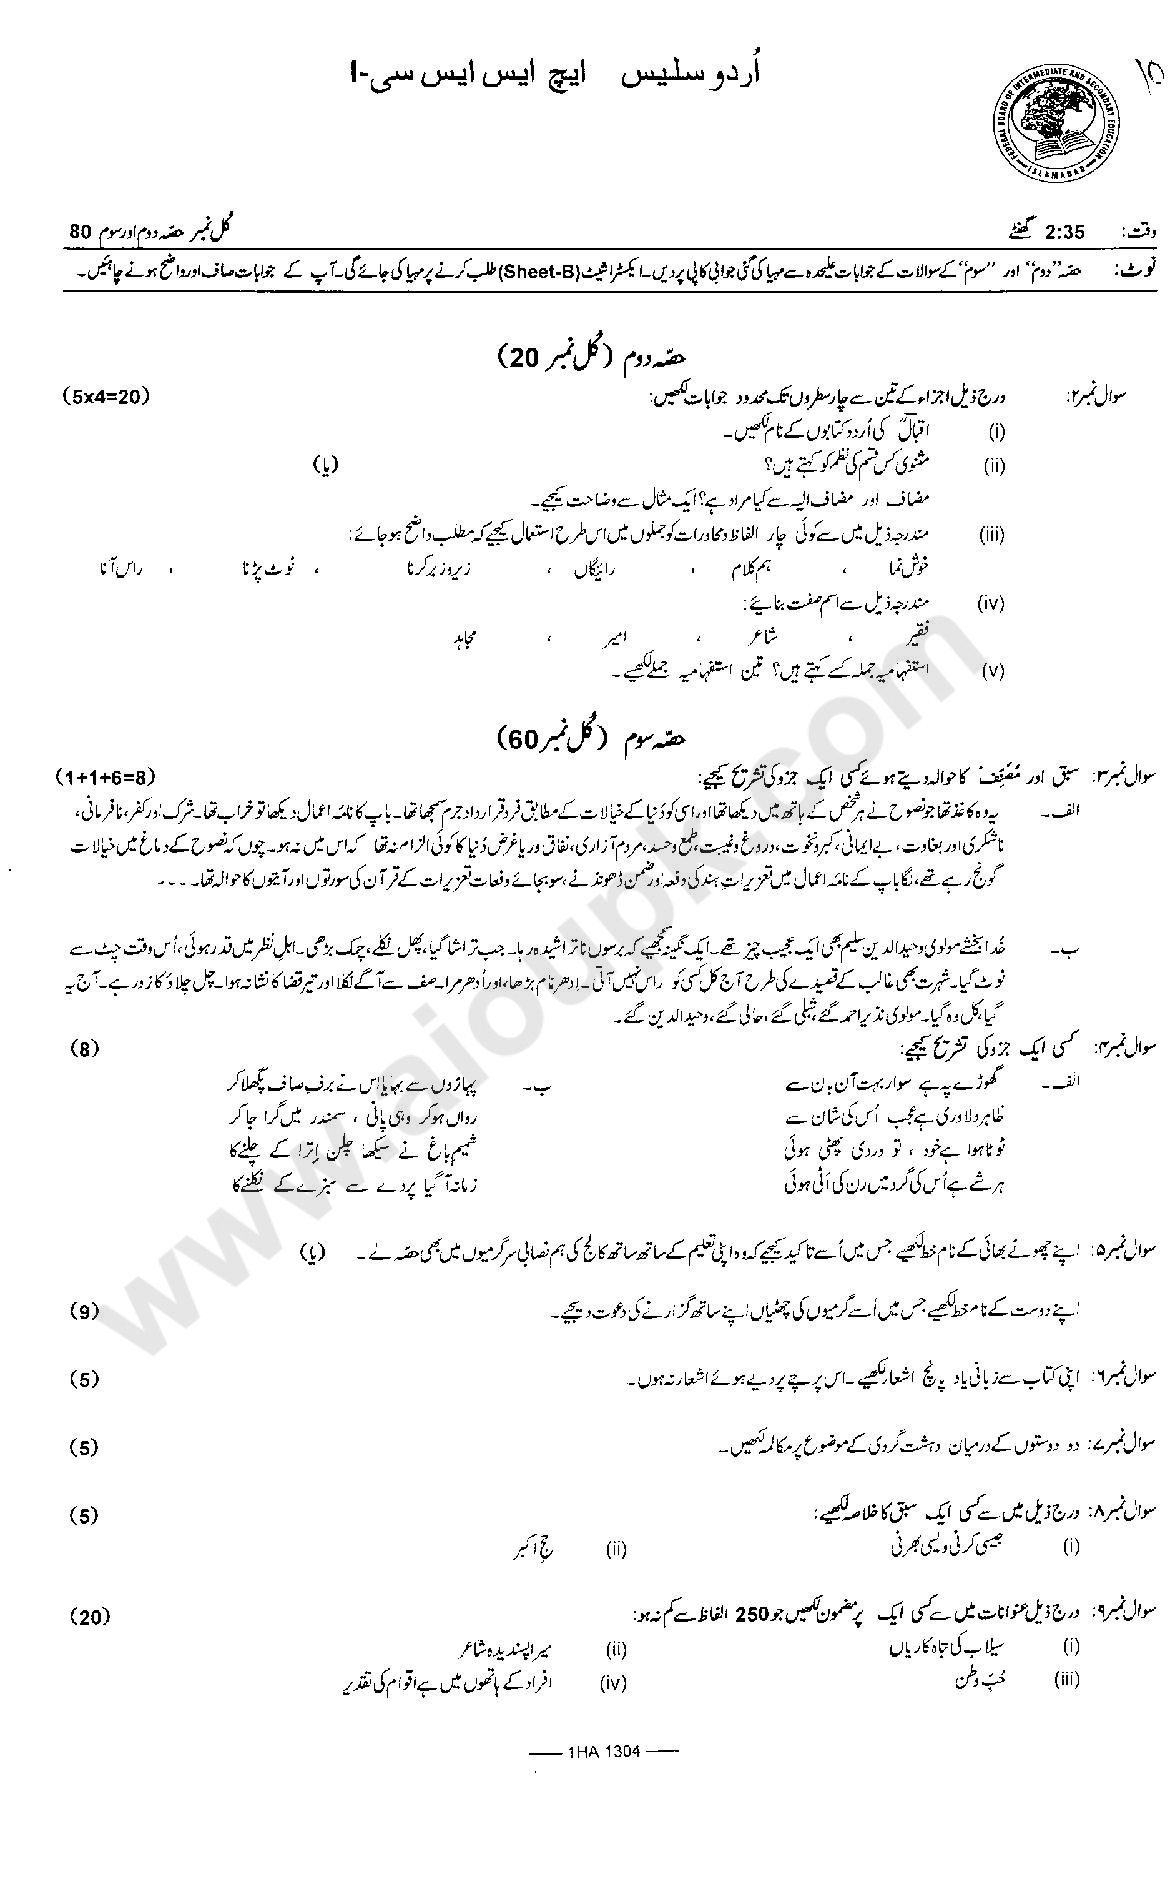 essays in urdu for 12th class Allama iqbal essay in urdu for class 12 никита.